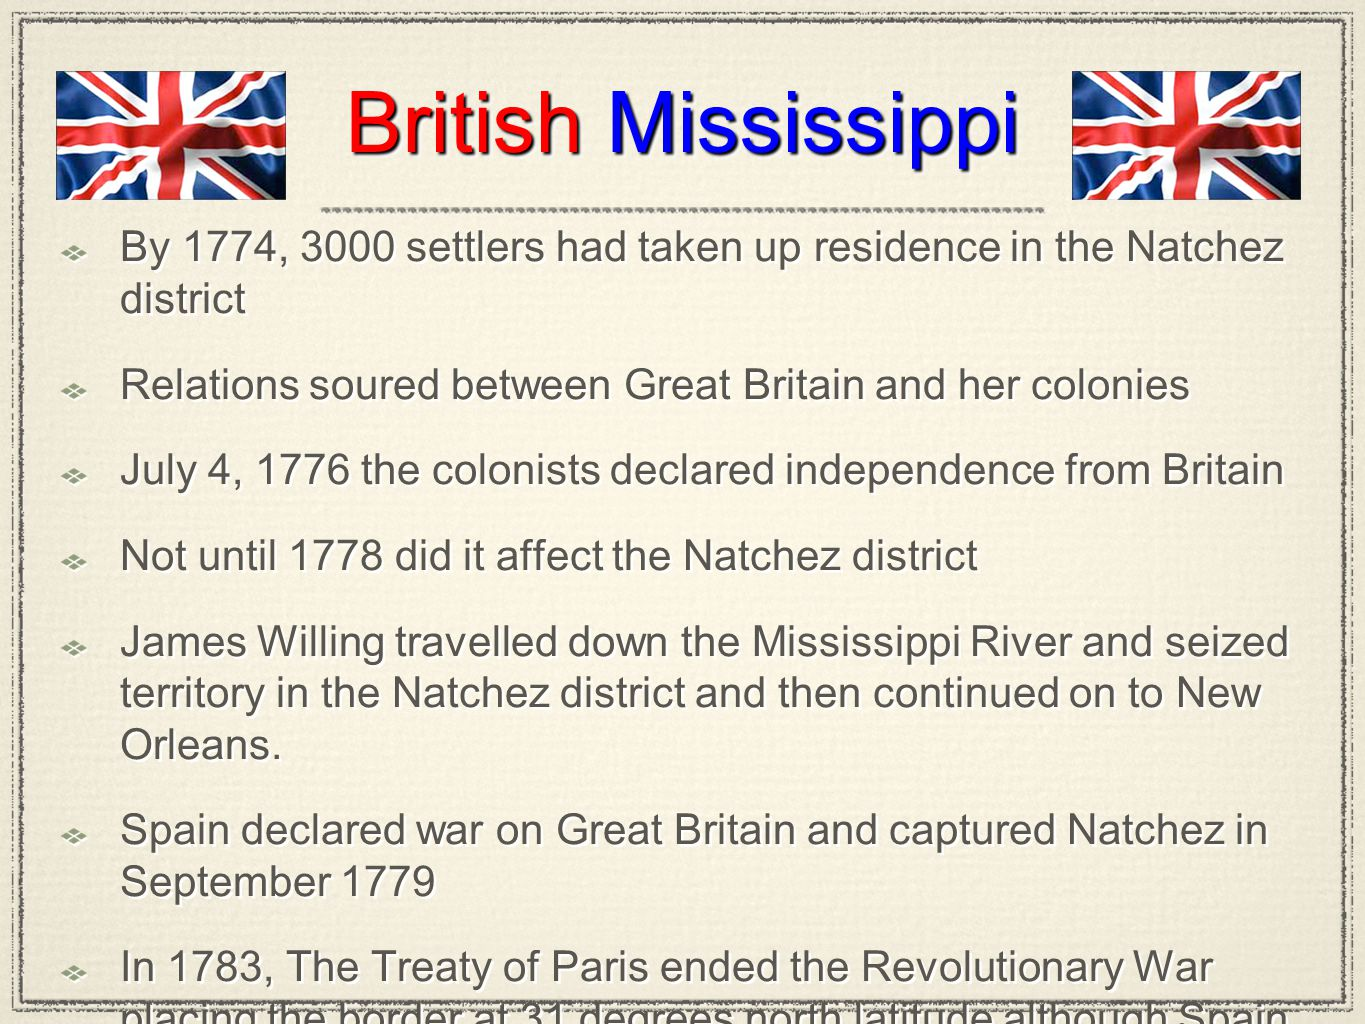 British Mississippi By 1774, 3000 settlers had taken up residence in the Natchez district. Relations soured between Great Britain and her colonies.